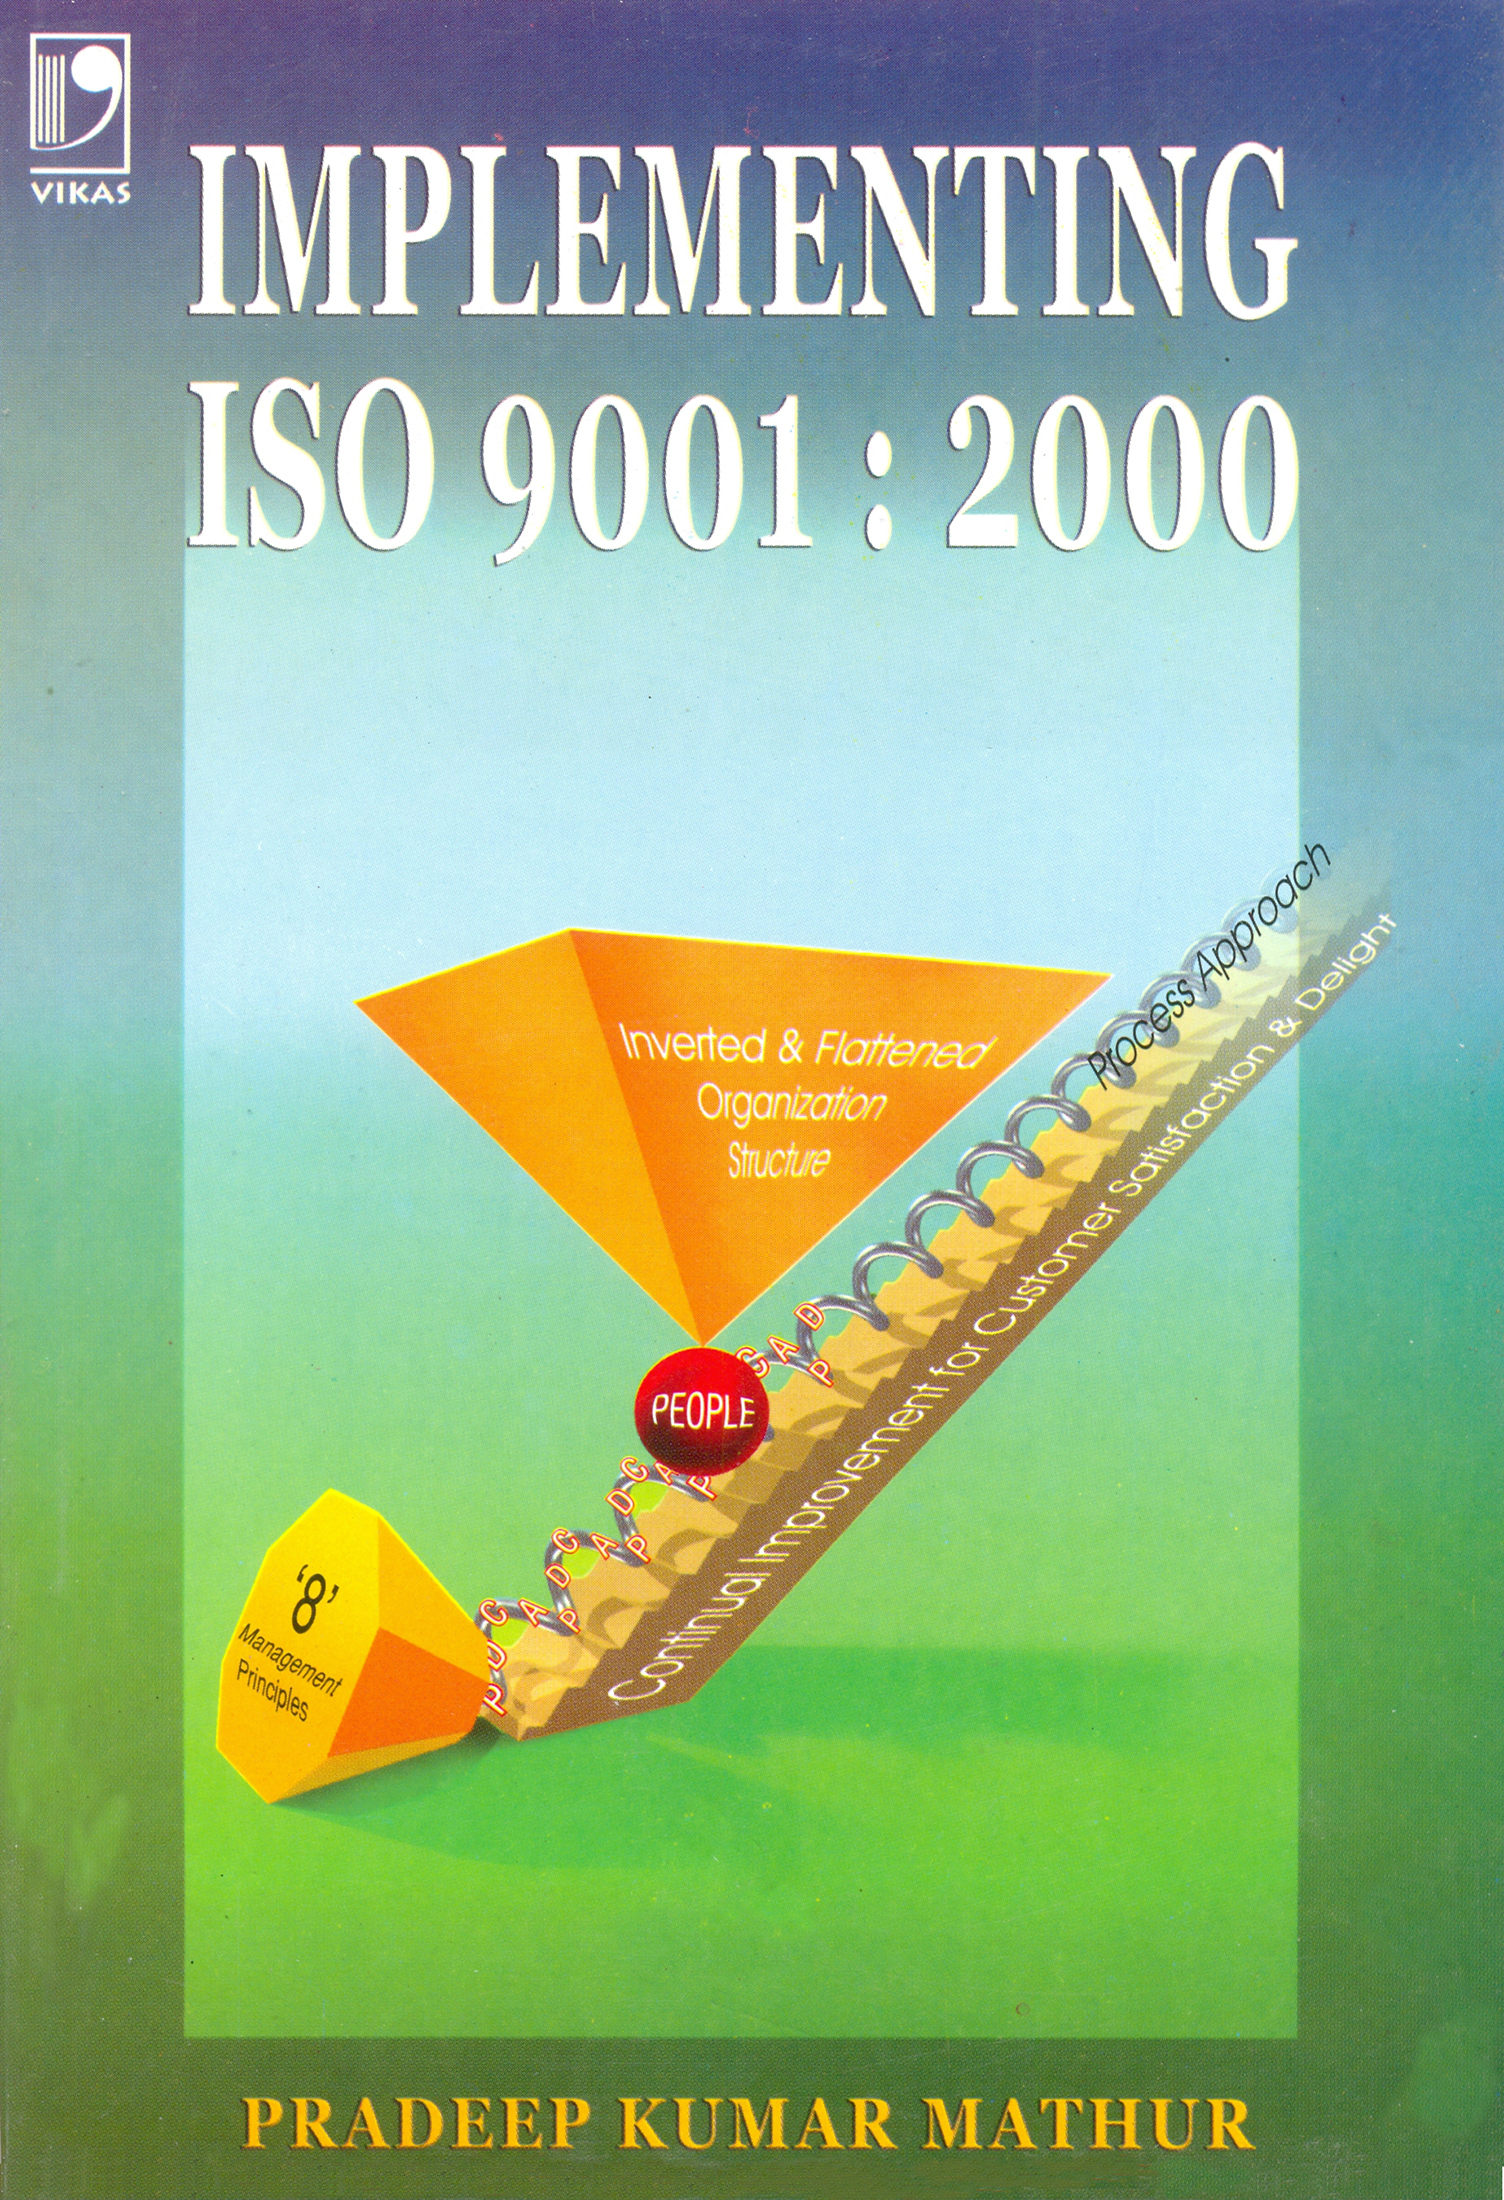 Implementing ISO 9001: 2000, 1/e  by Pradeep Kumar Mathur